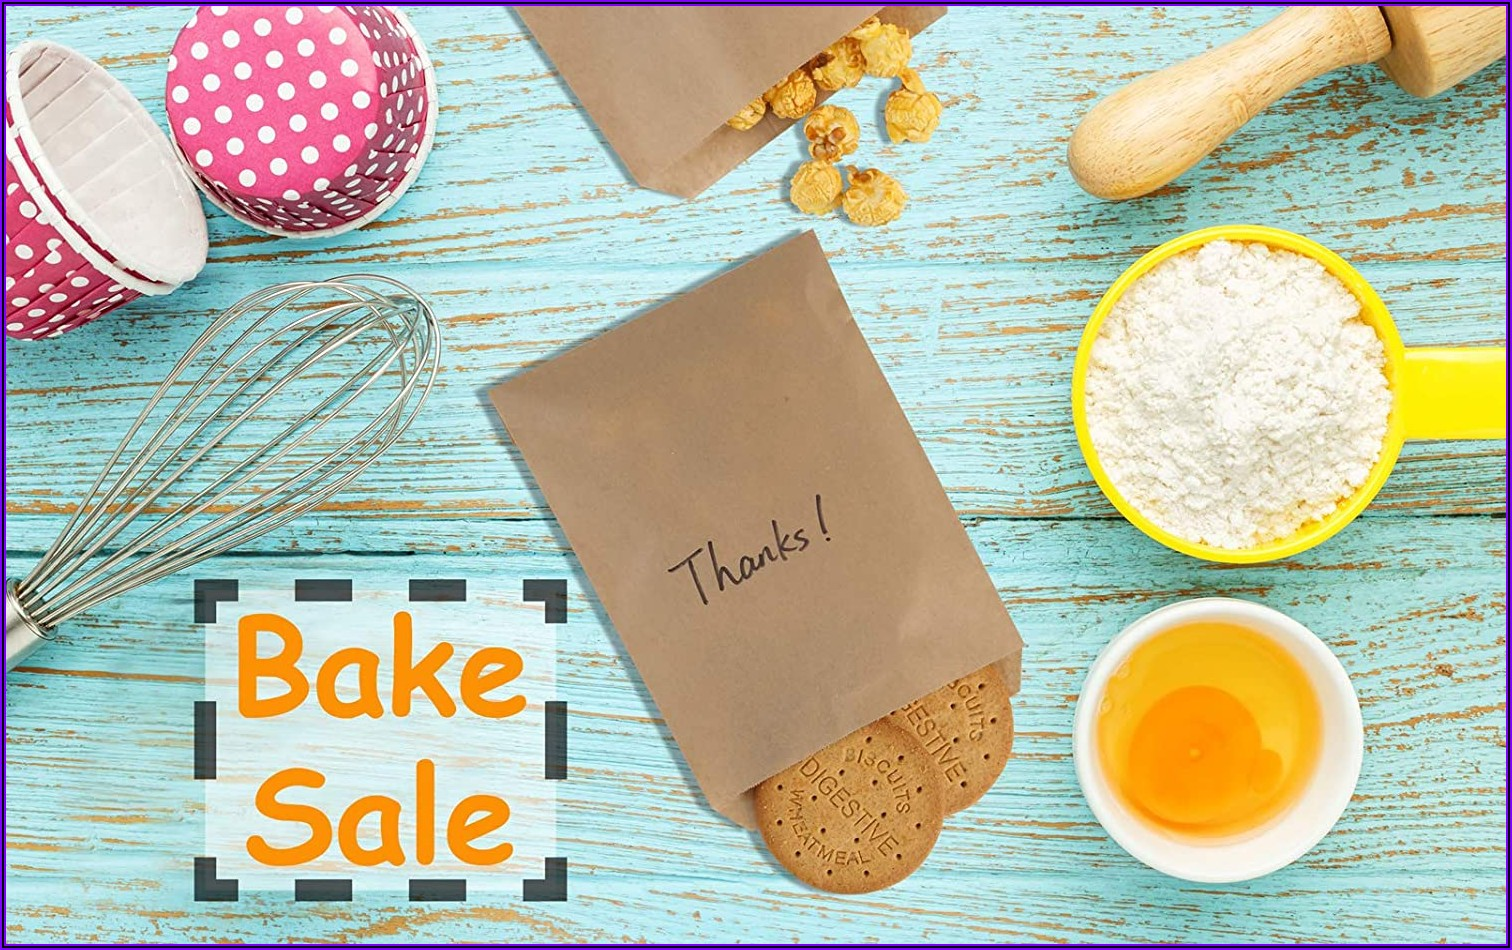 Where To Buy Glassine Cookie Bags